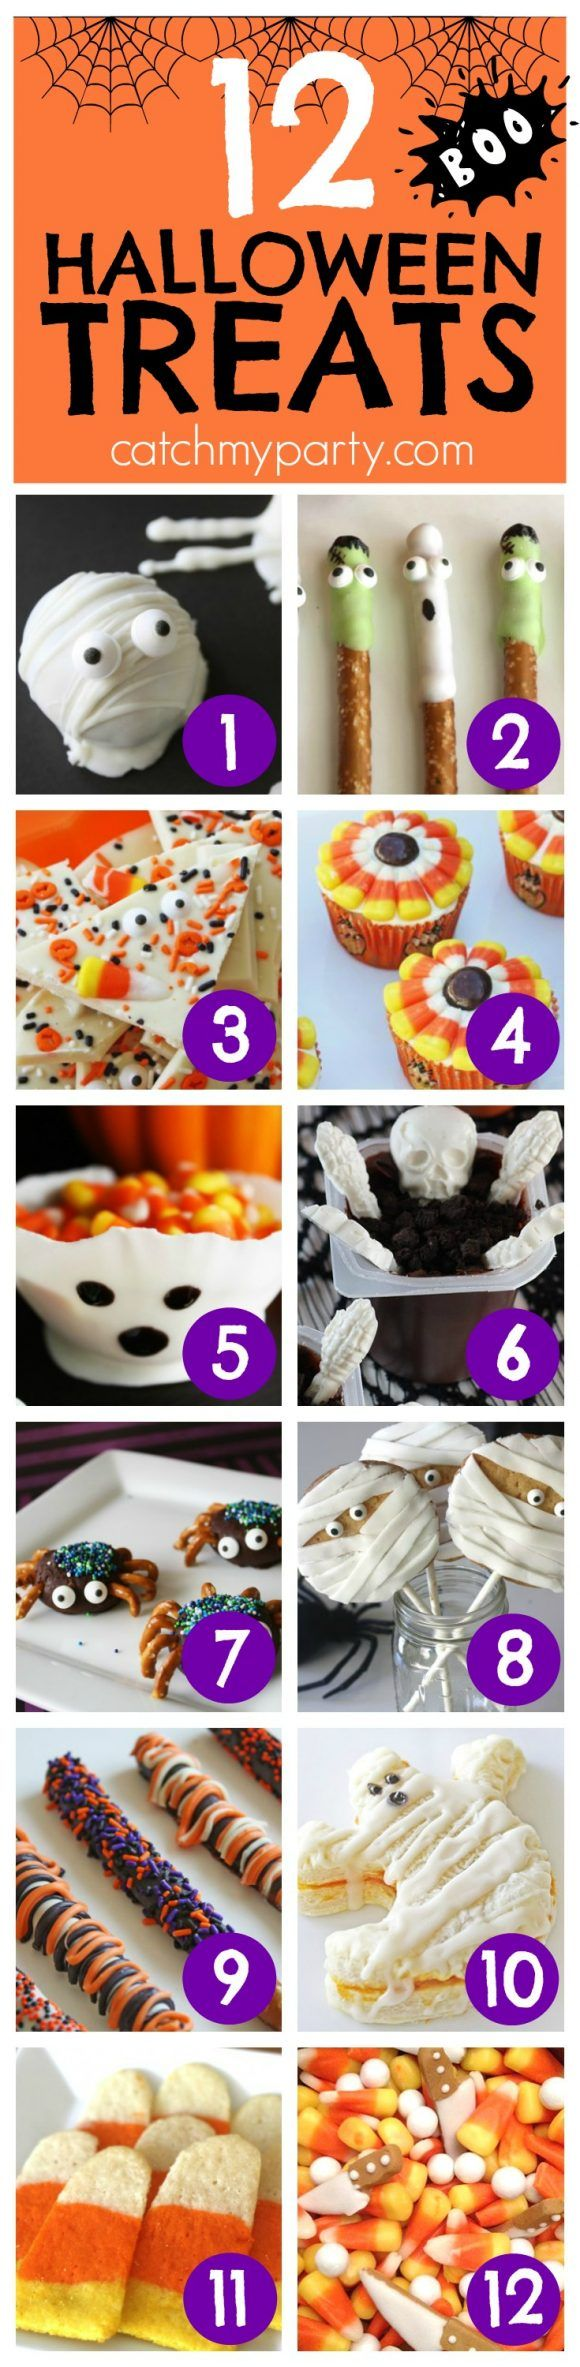 17 best images about halloween food ideas on pinterest for Easy halloween treats for work party